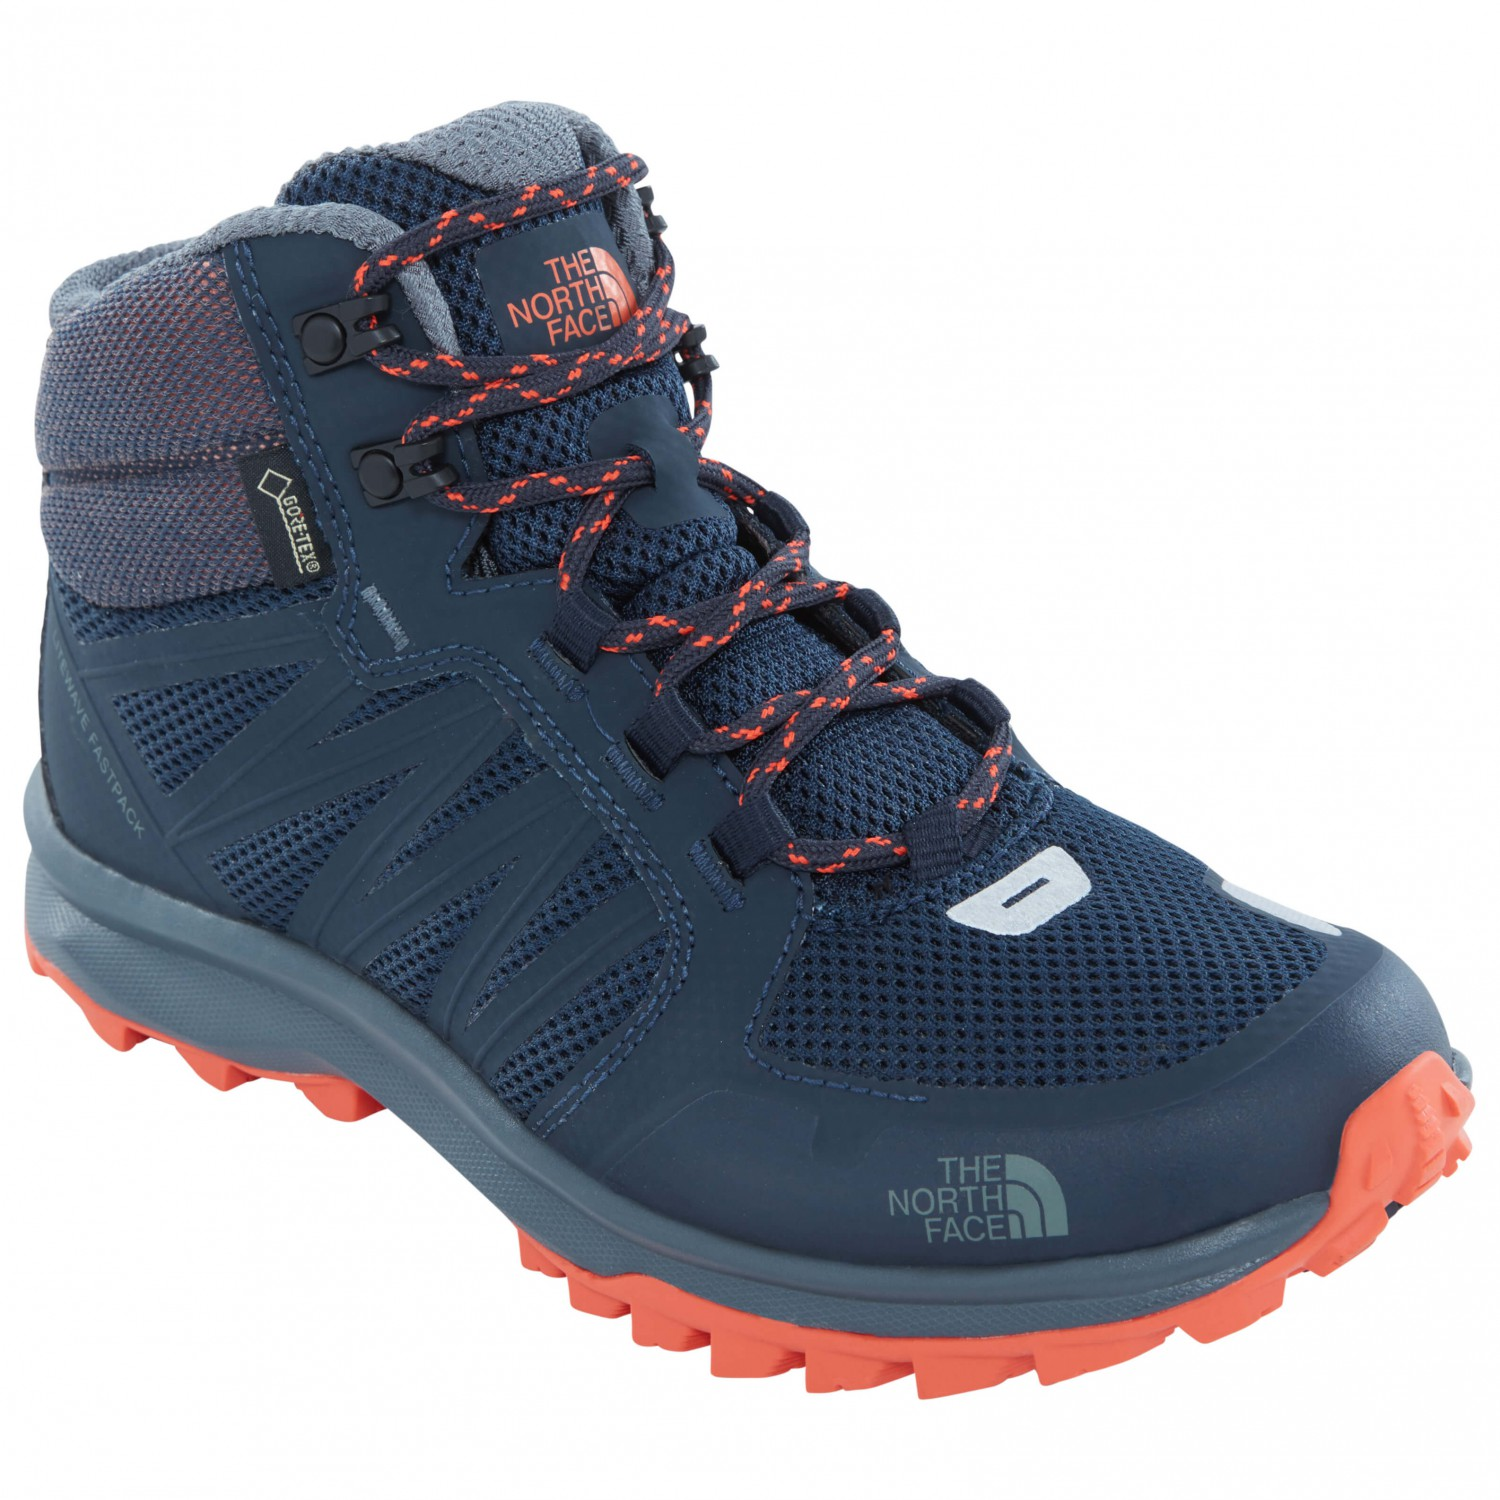 2711aca08 The North Face - Women's Litewave Fastpack Mid GTX - Walking boots